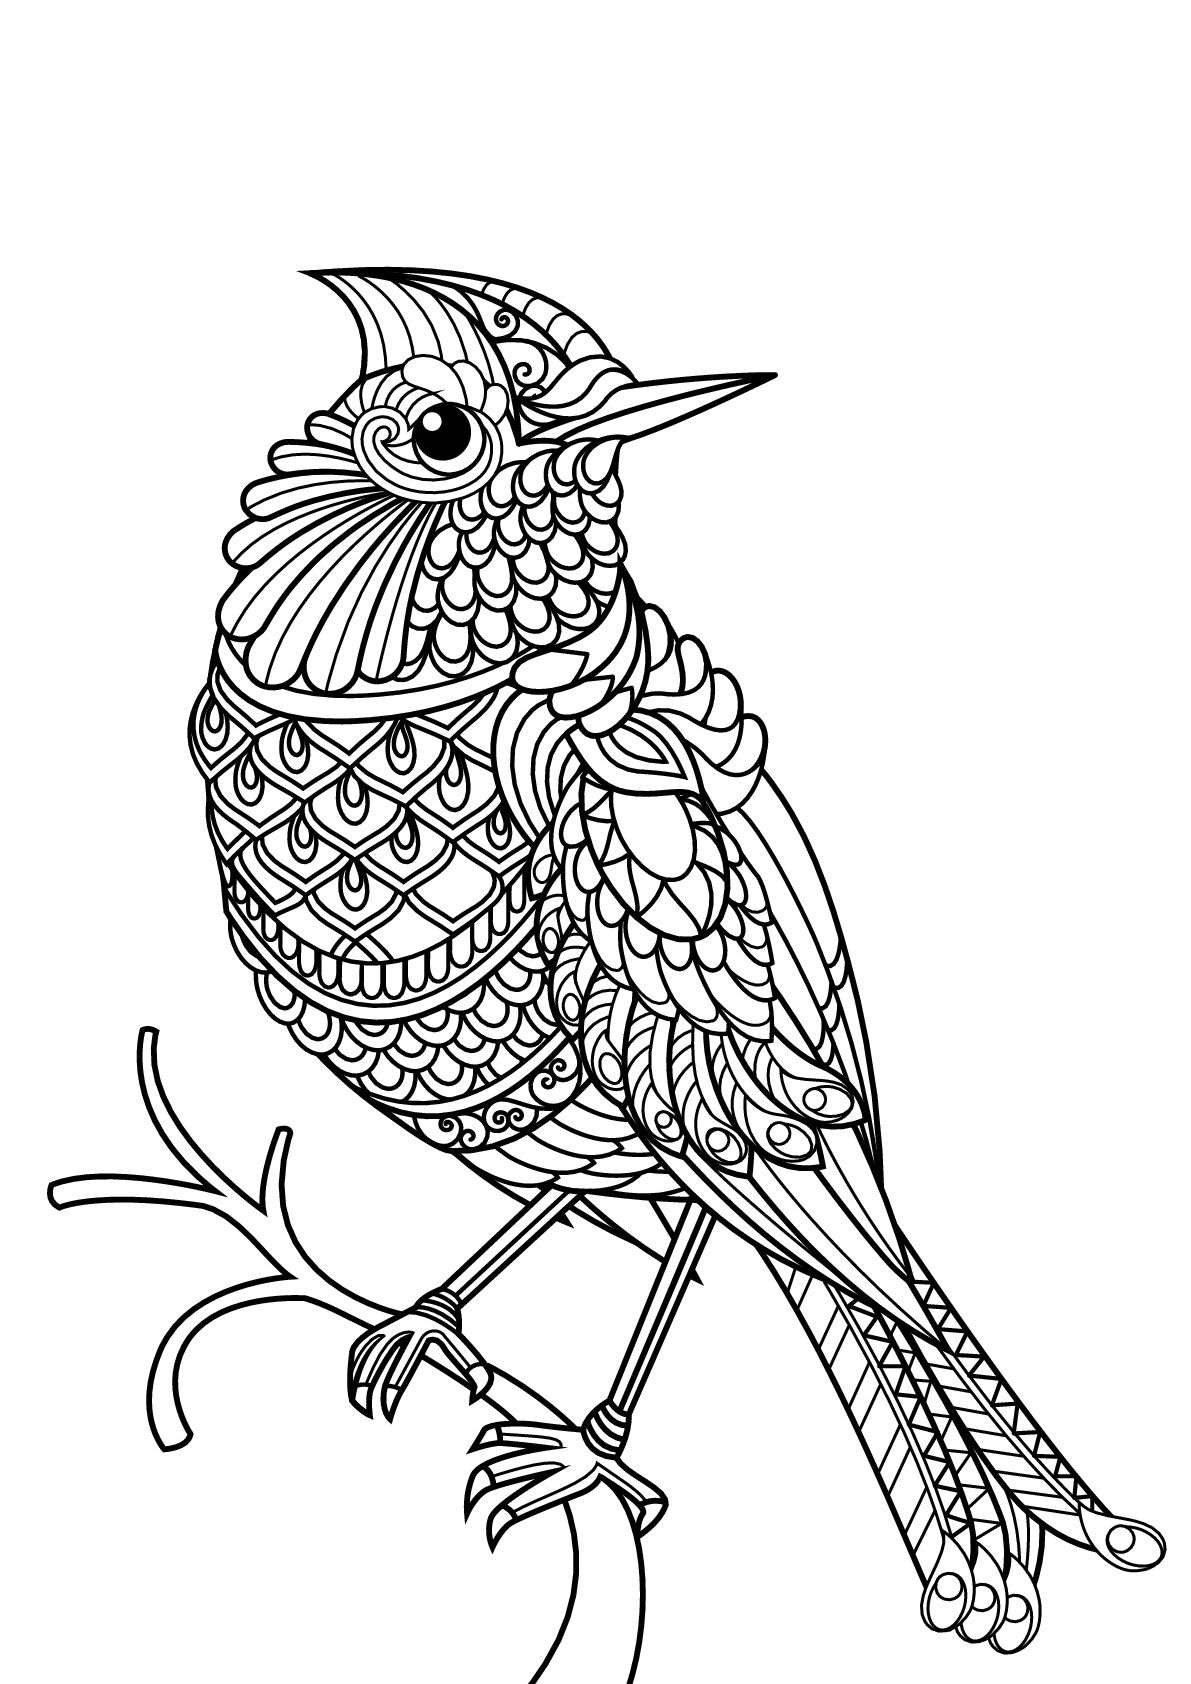 Bird With Complex And Beautiful Patterns From The Gallery Birds Bird Coloring Pages Farm Animal Coloring Pages Mandala Coloring Pages